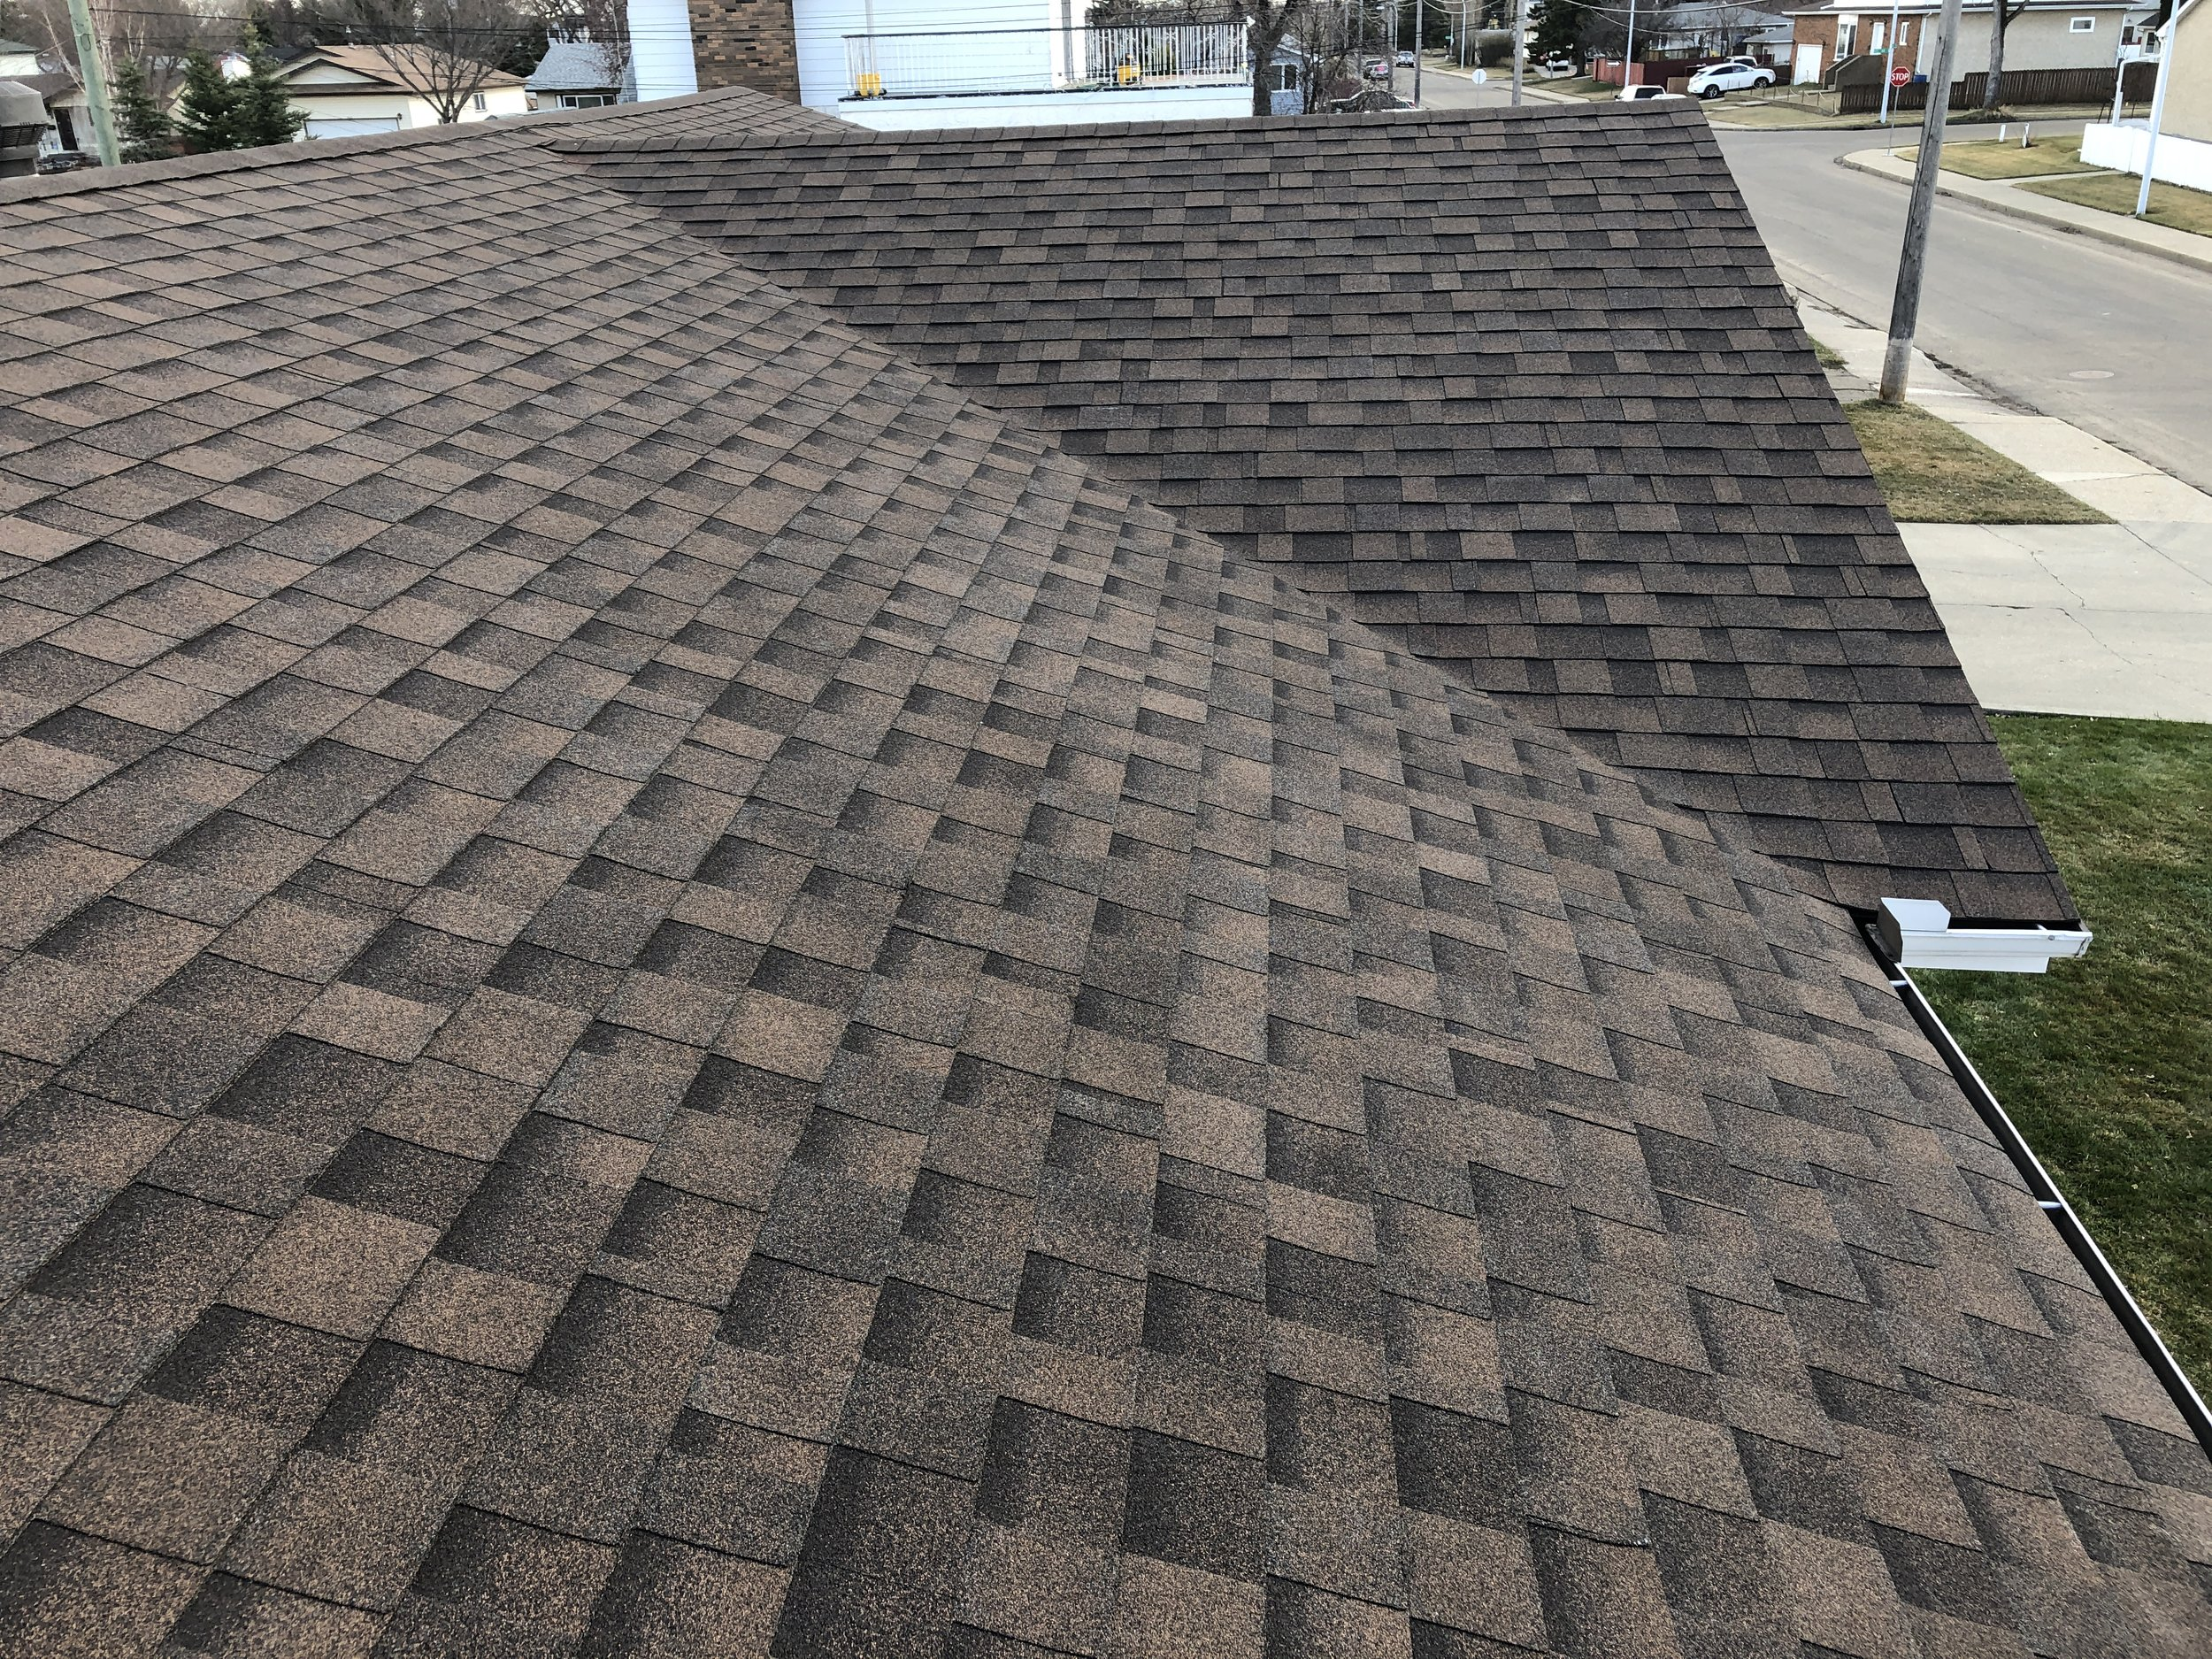 Dual tone brown shingles installed on a residential roof